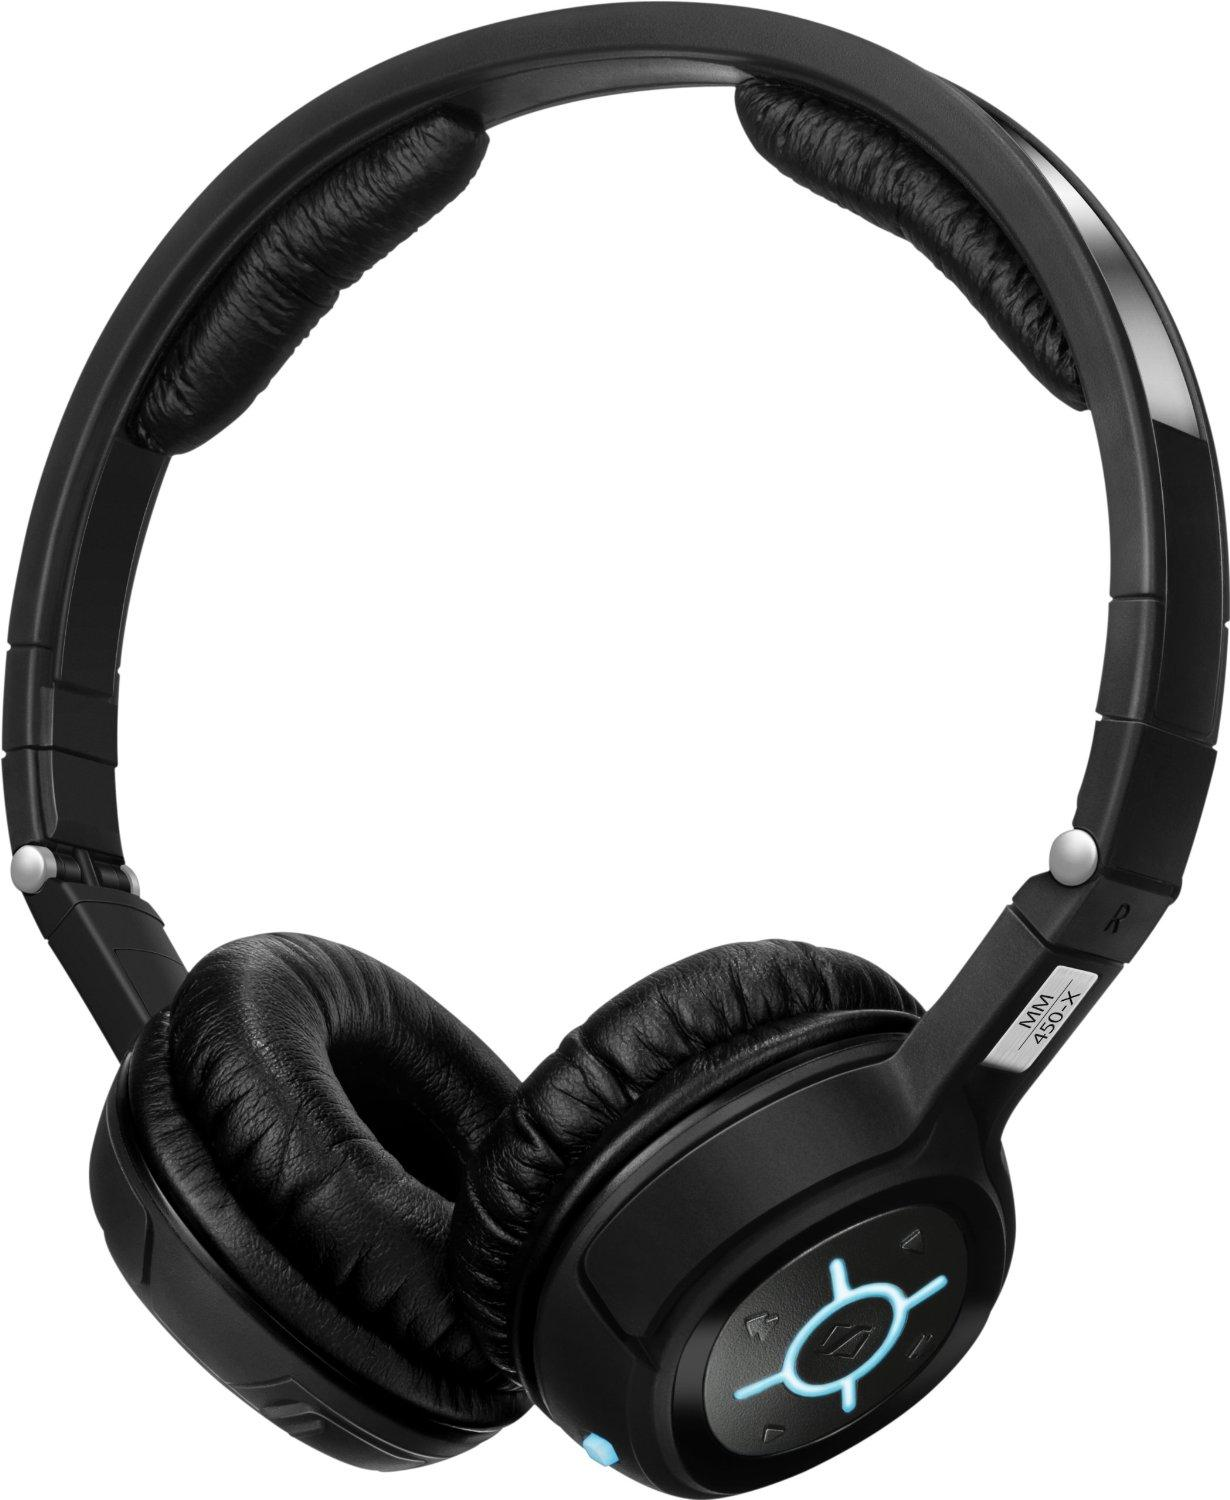 $169.99 Sennheiser MM 450-X Wireless Bluetooth Headphones - Black